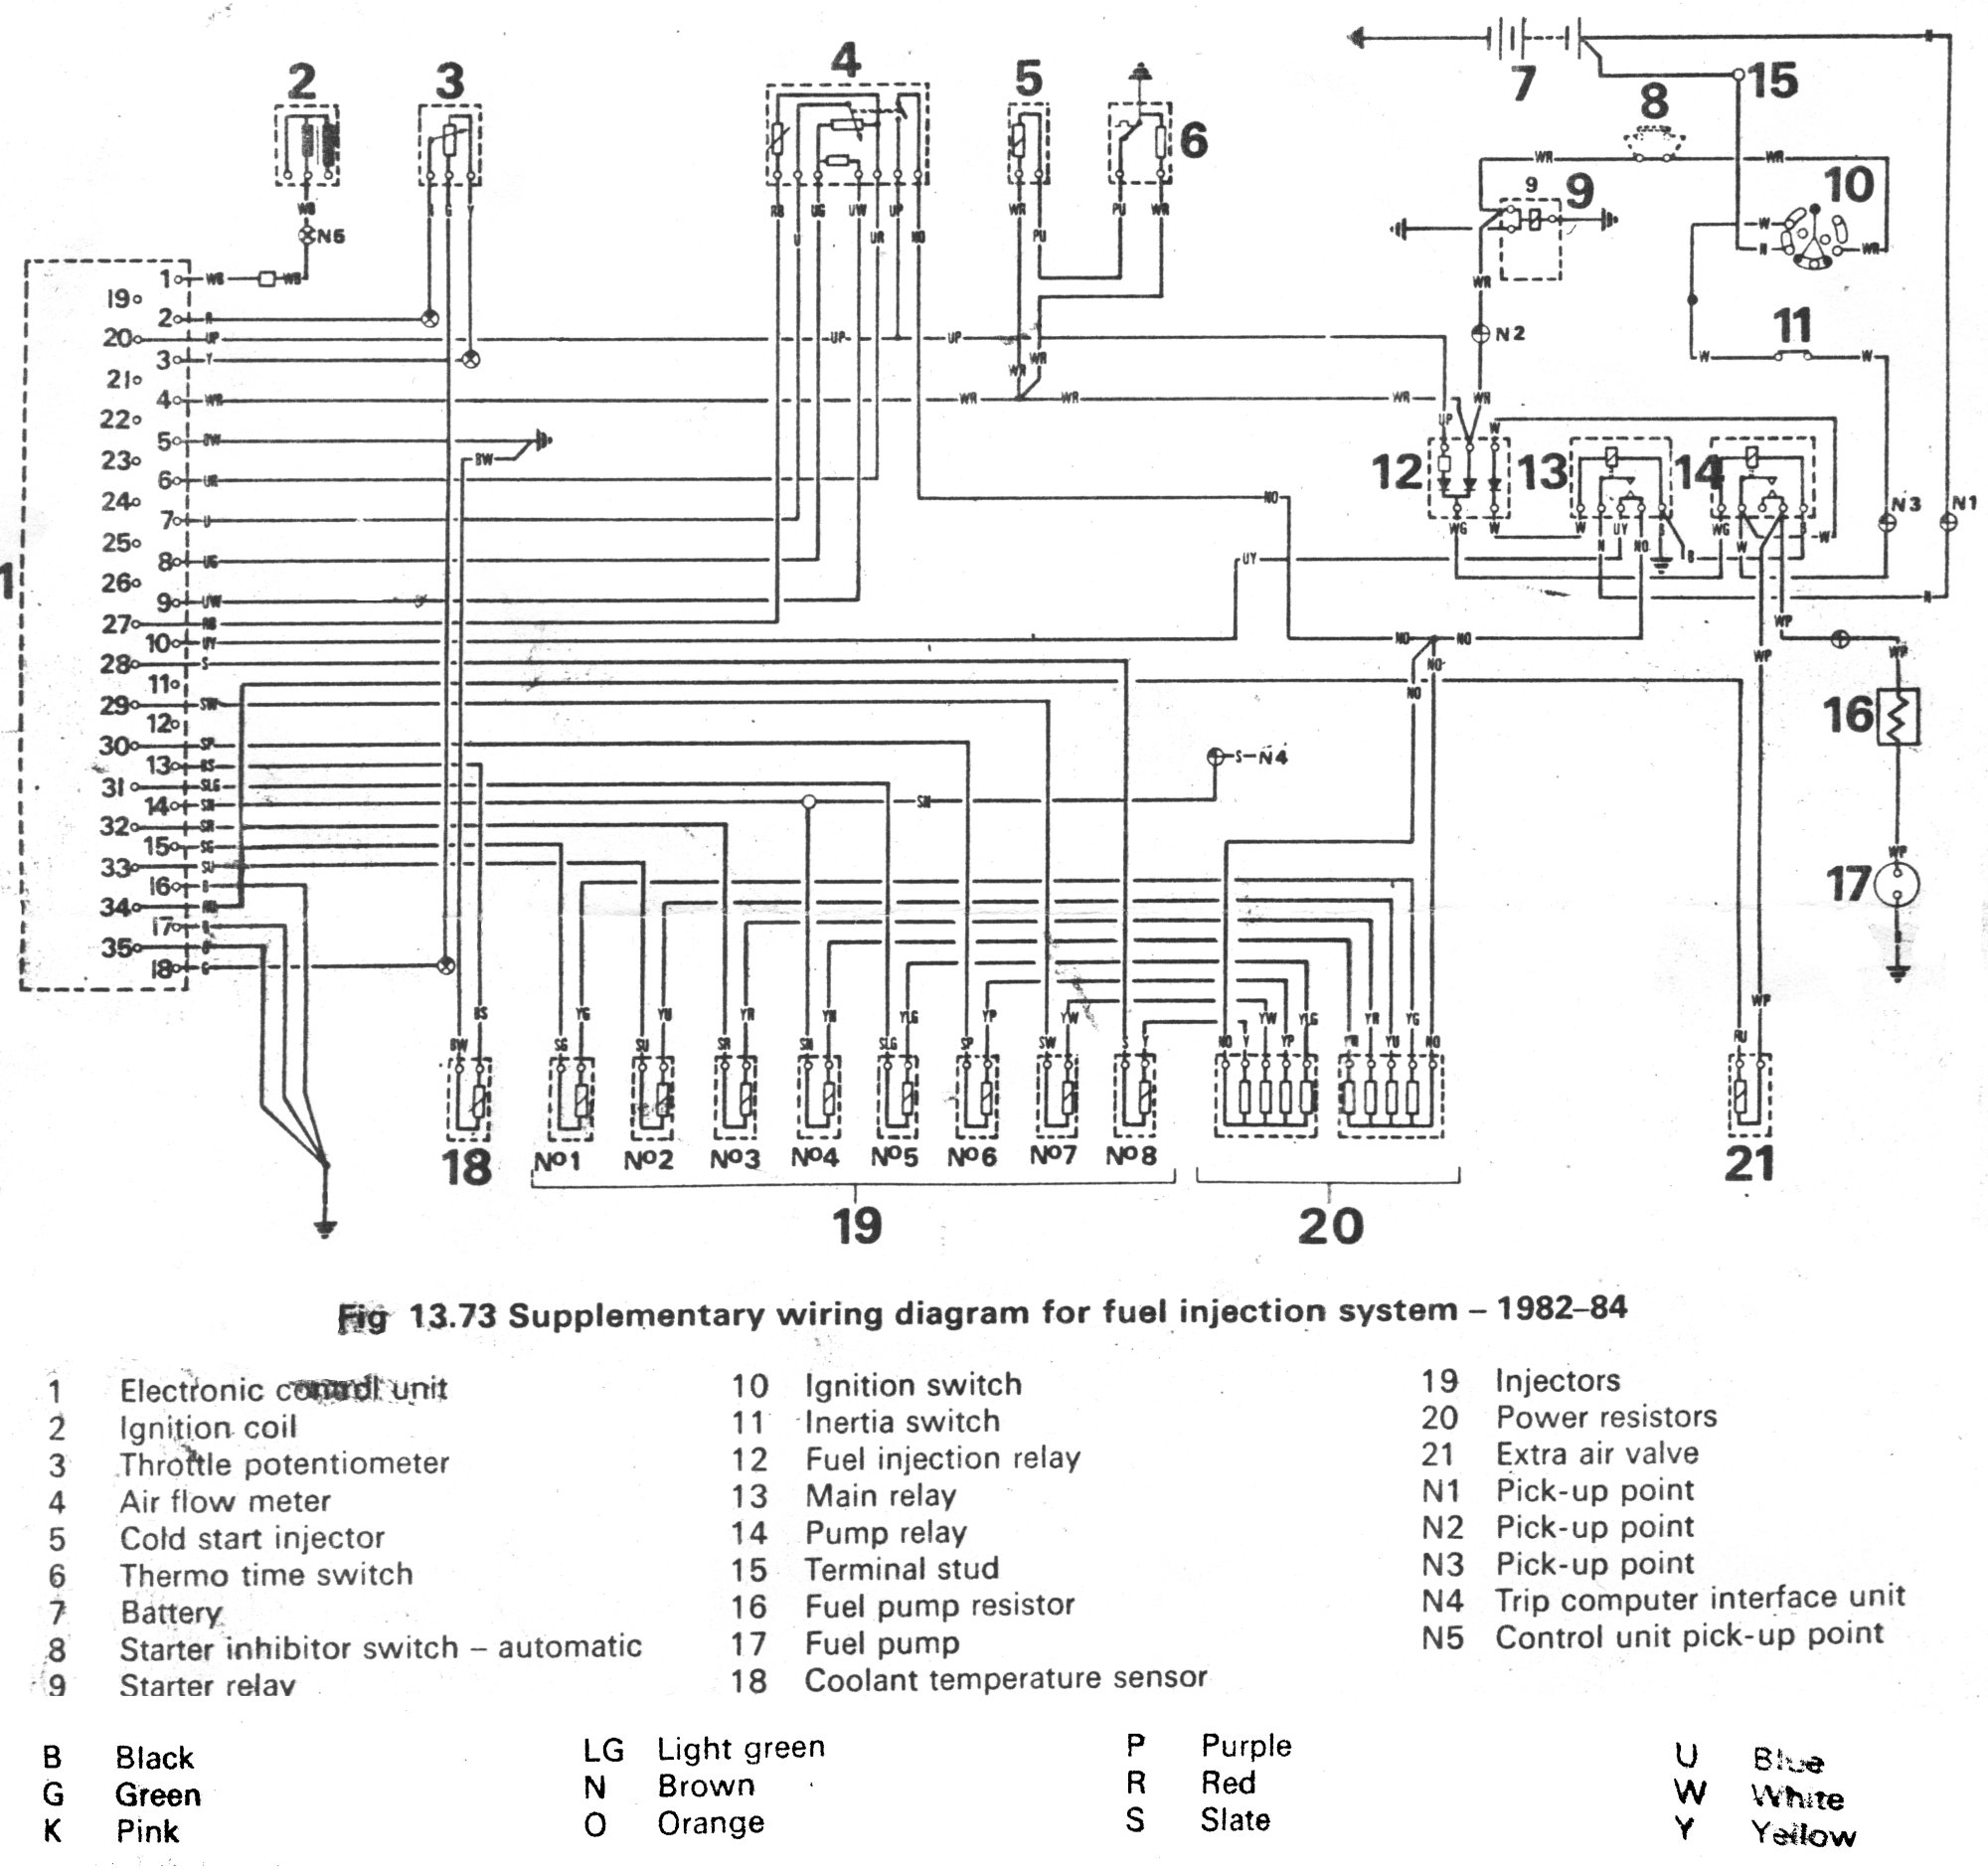 fuse box diagram 1996 h 2 wiring diagram required - international forum - lr4x4 ... fuse box diagram 1996 1997 range rover